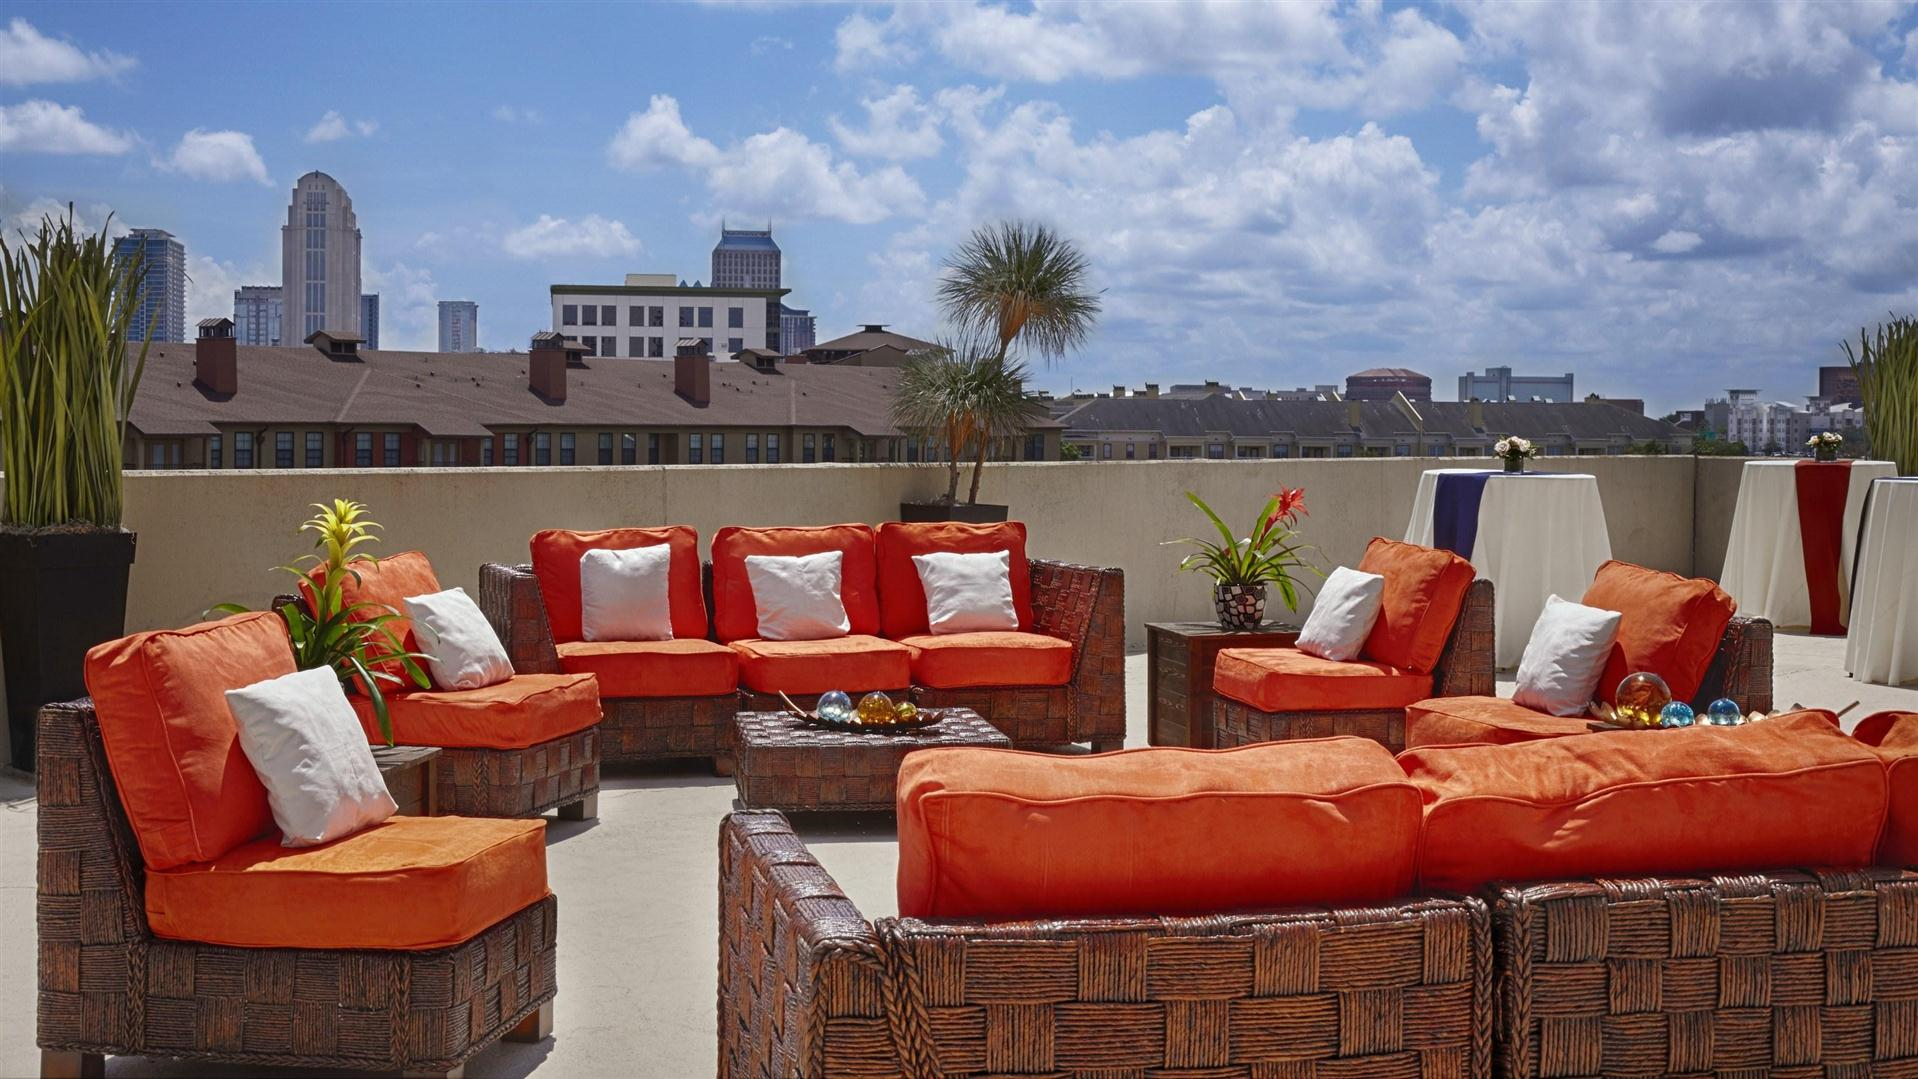 Meetings And Events At Doubletree By Hilton Hotel Orlando Downtown